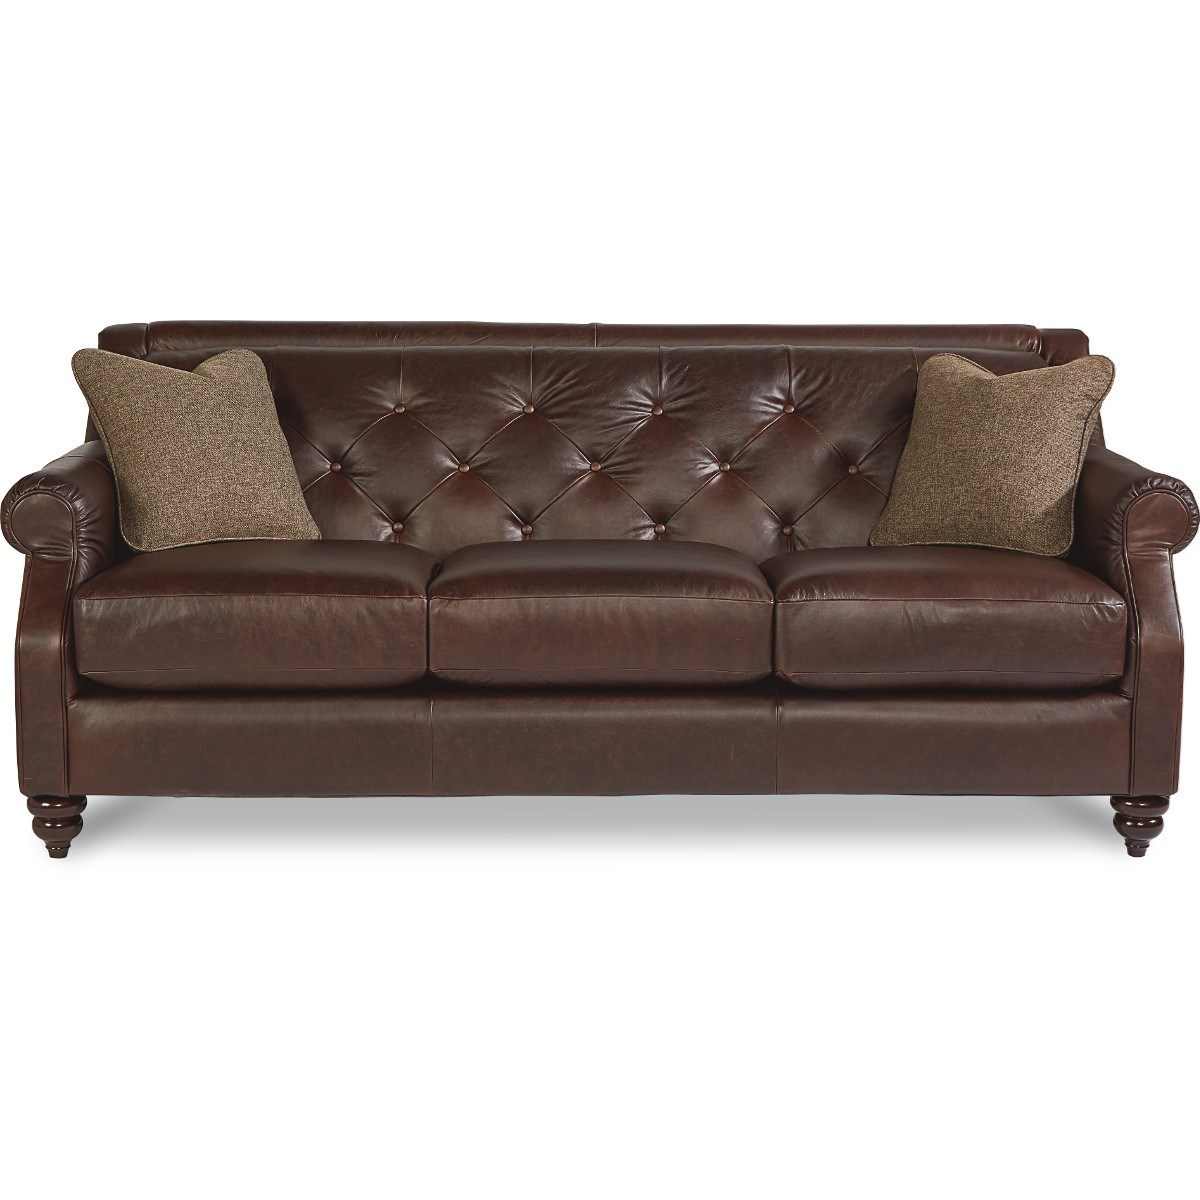 Aberdeen Sofa by La-Z-Boy at Fisher Home Furnishings